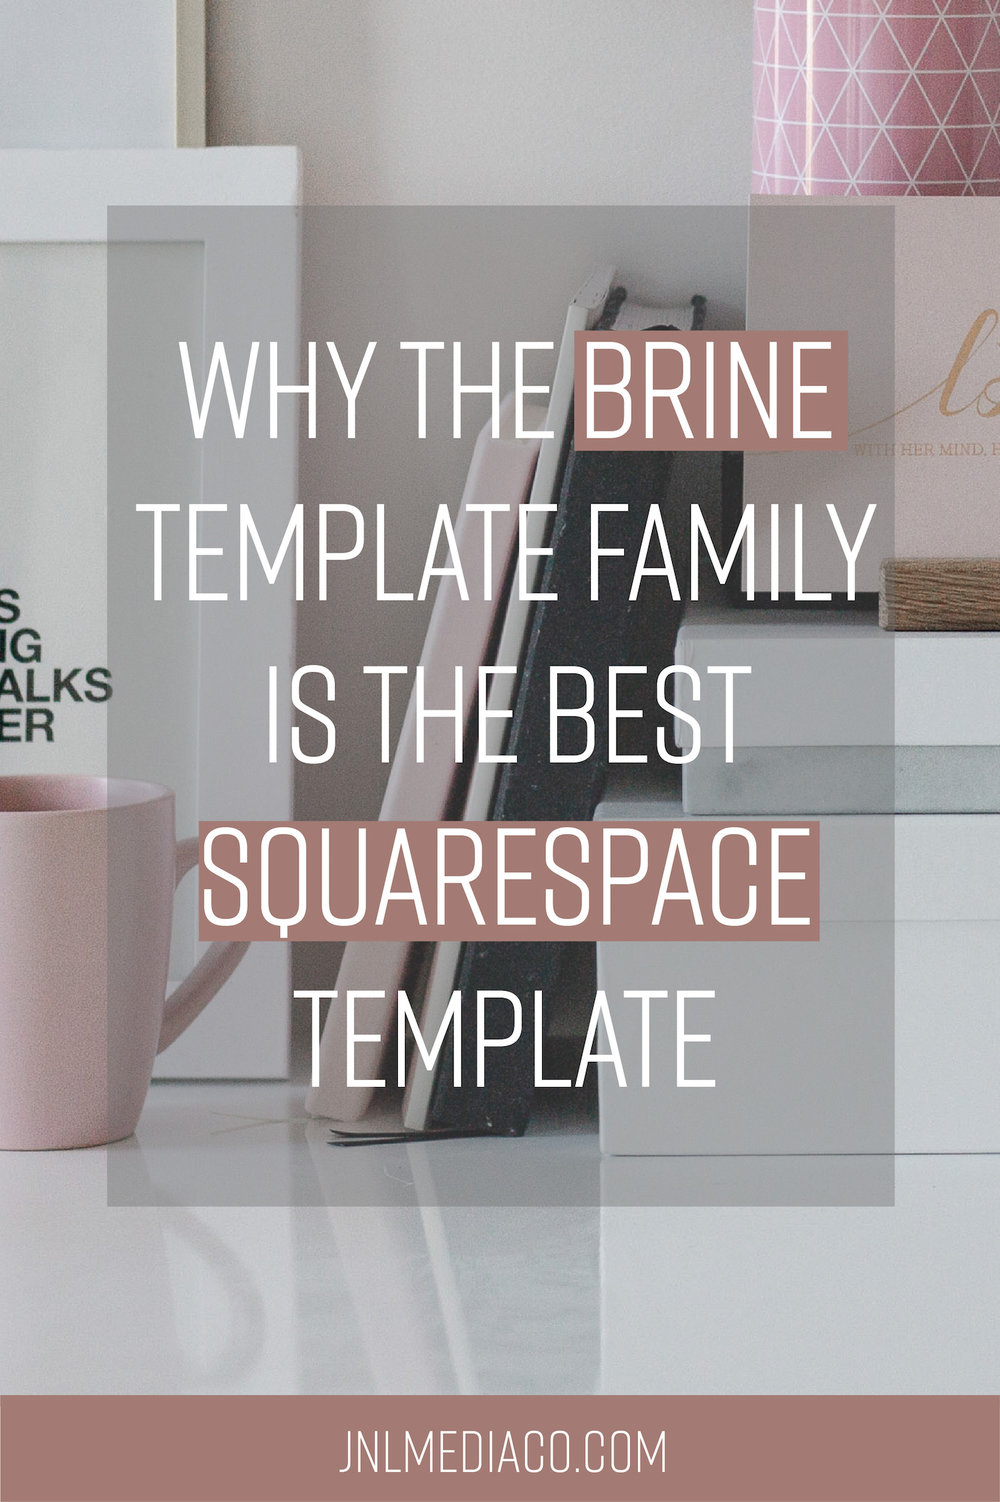 I wrote a blog post a couple of months ago on why I chose the  Brine family template  as the template for my website and it's still one of my best performing blog posts! So, I thought I would write a blog post on why the Brine family template is one of or if not THE best template on SP right now.